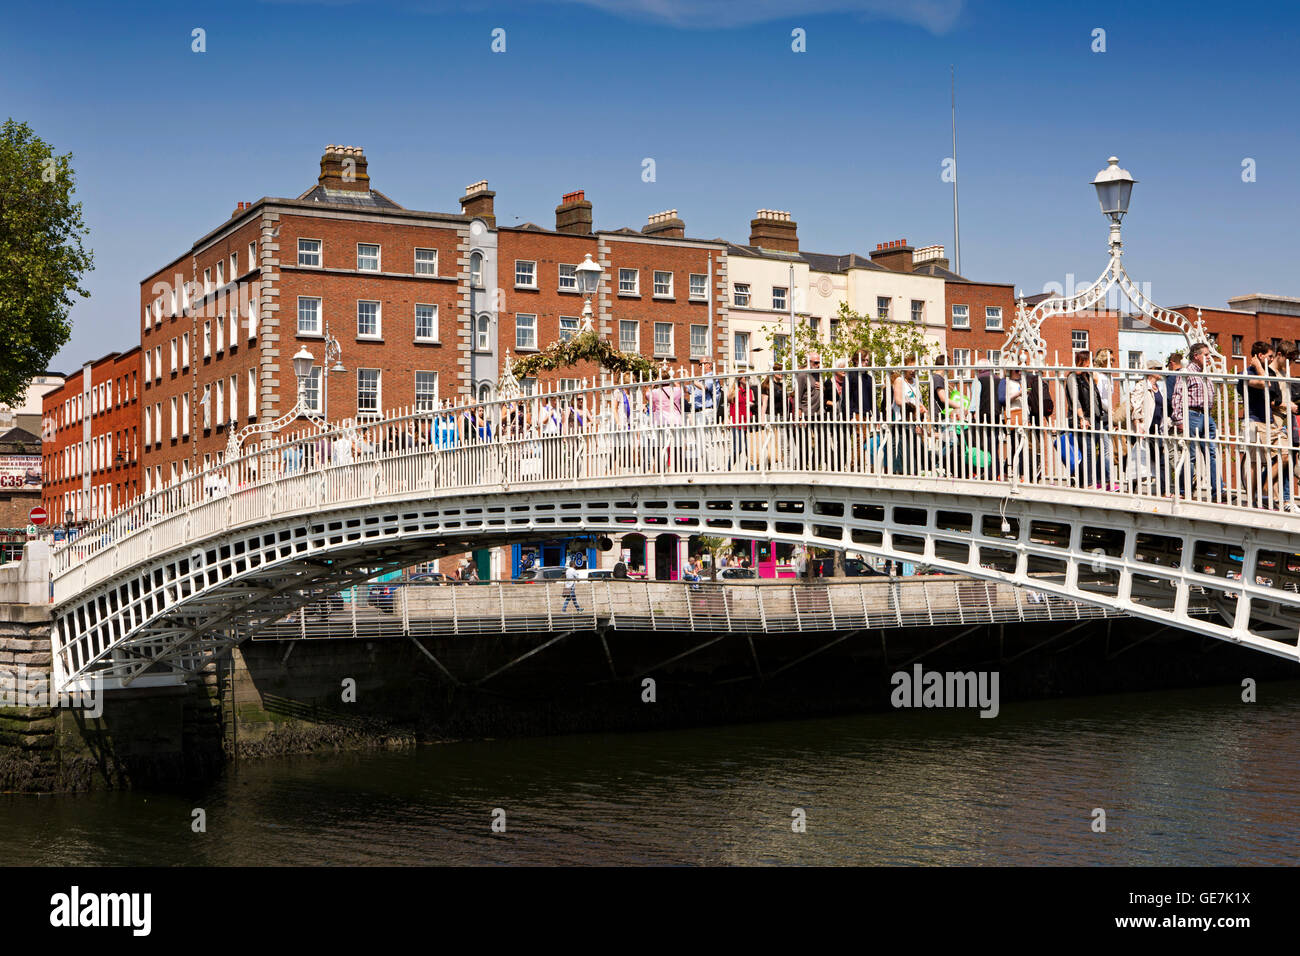 Ireland, Dublin, 1816 Halfpenny Bridge over the River Liffey - Stock Image